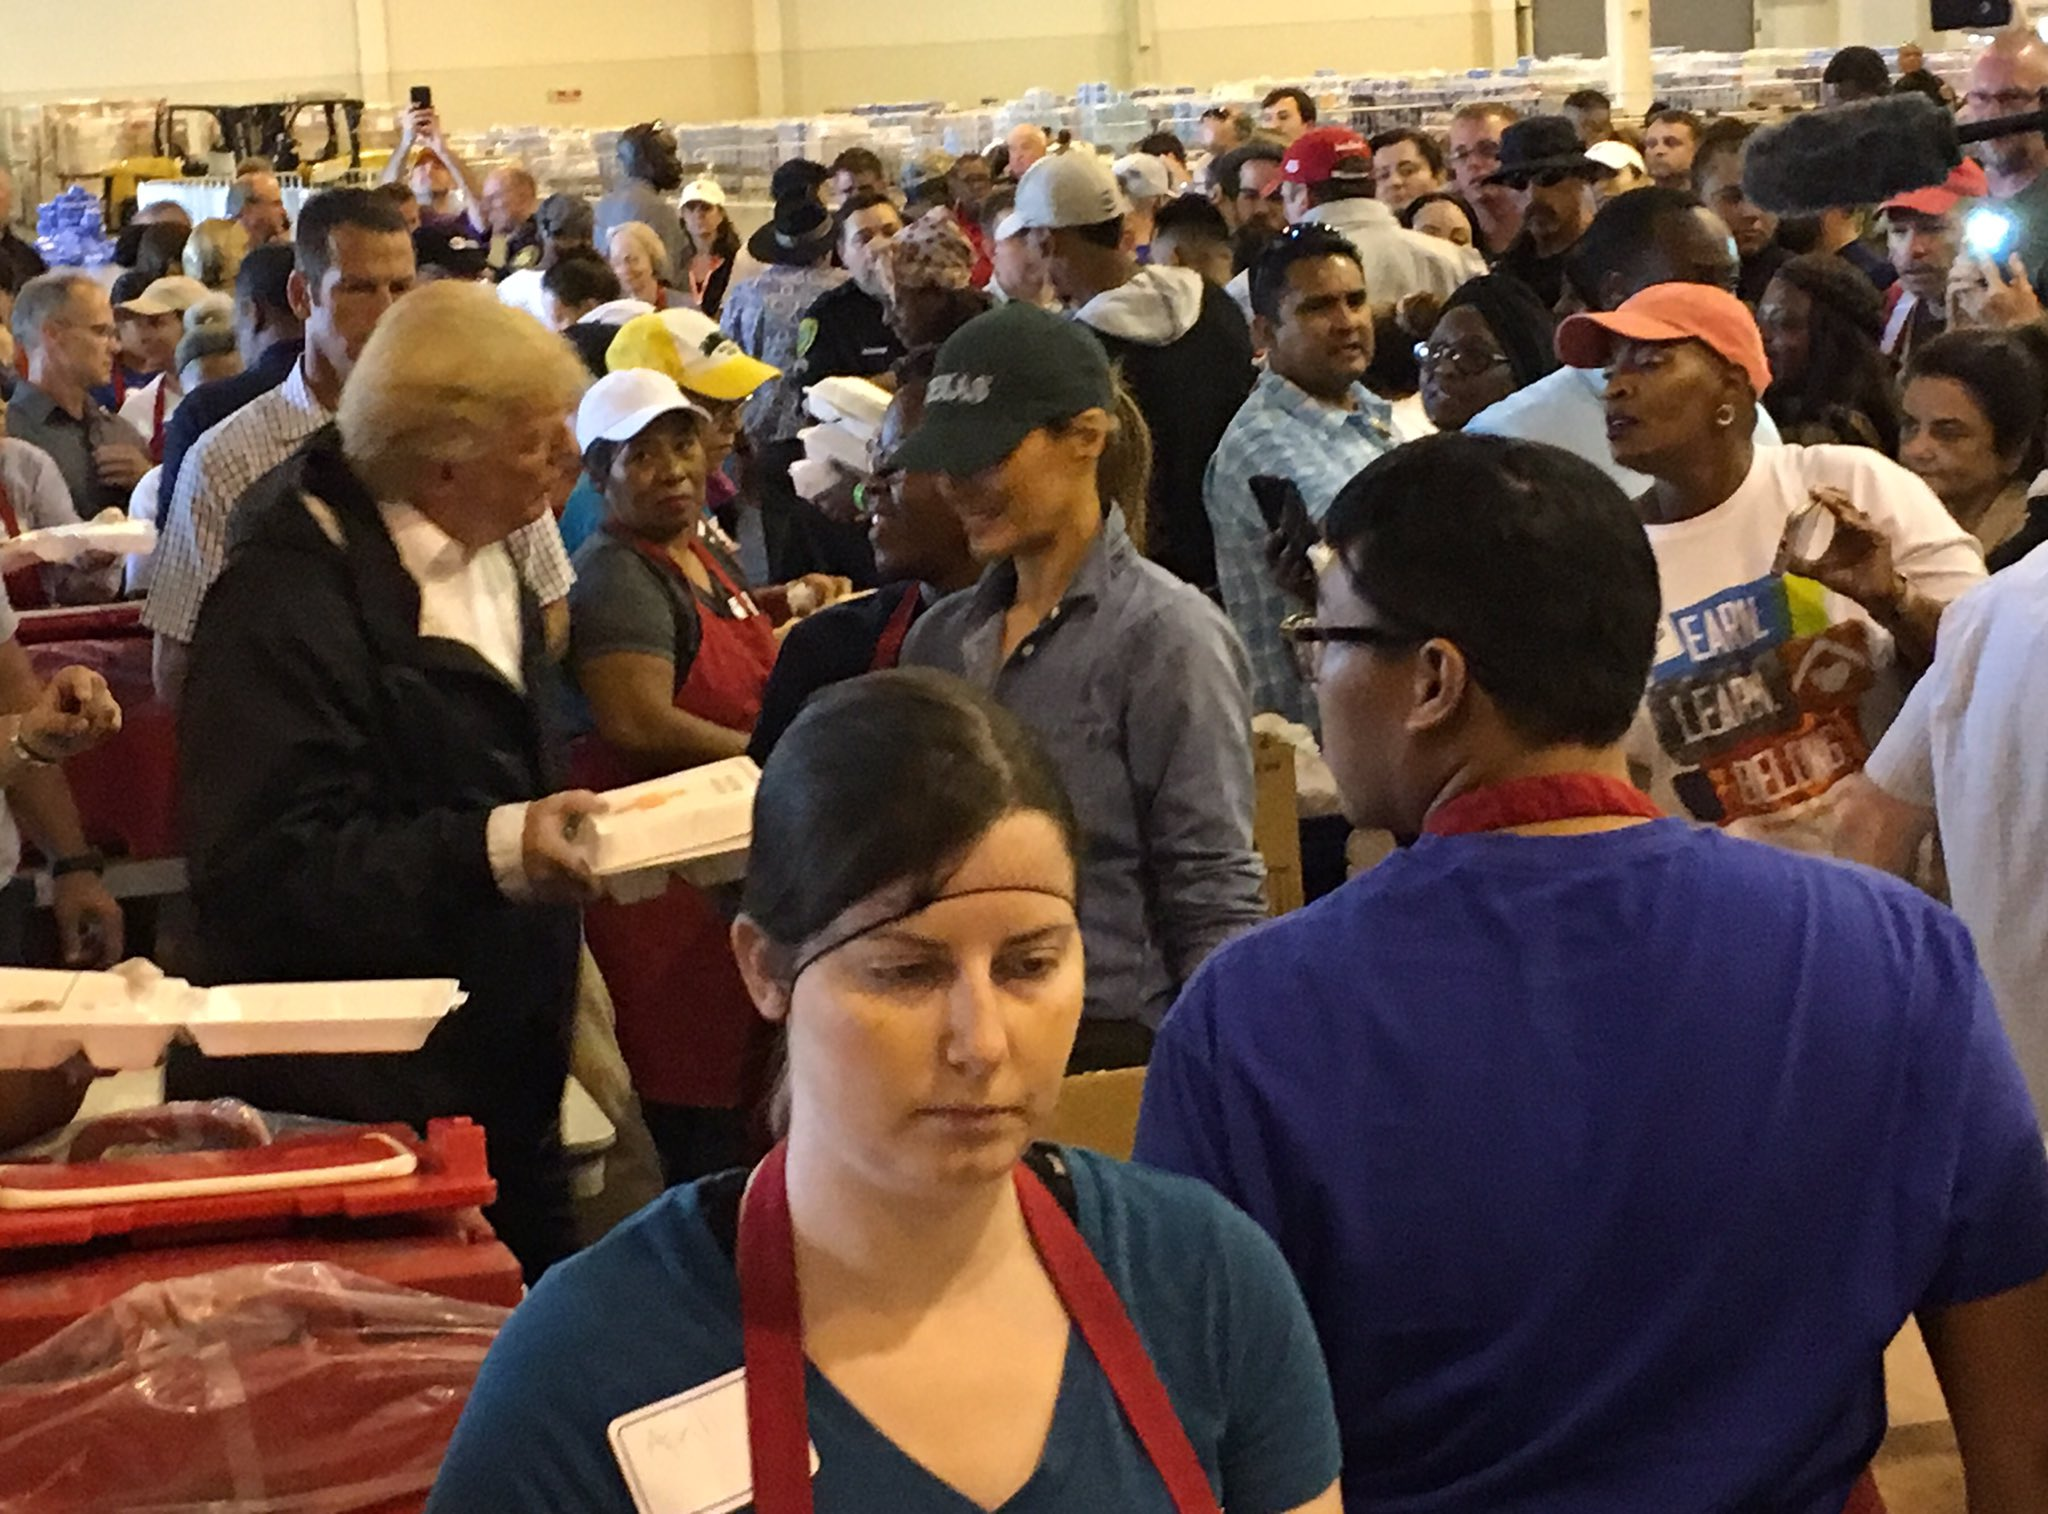 .@POTUS and @FLOTUS pass out lunch to storm survivors at relief center in Houston. #TexasStrong https://t.co/lmK5nnokbI